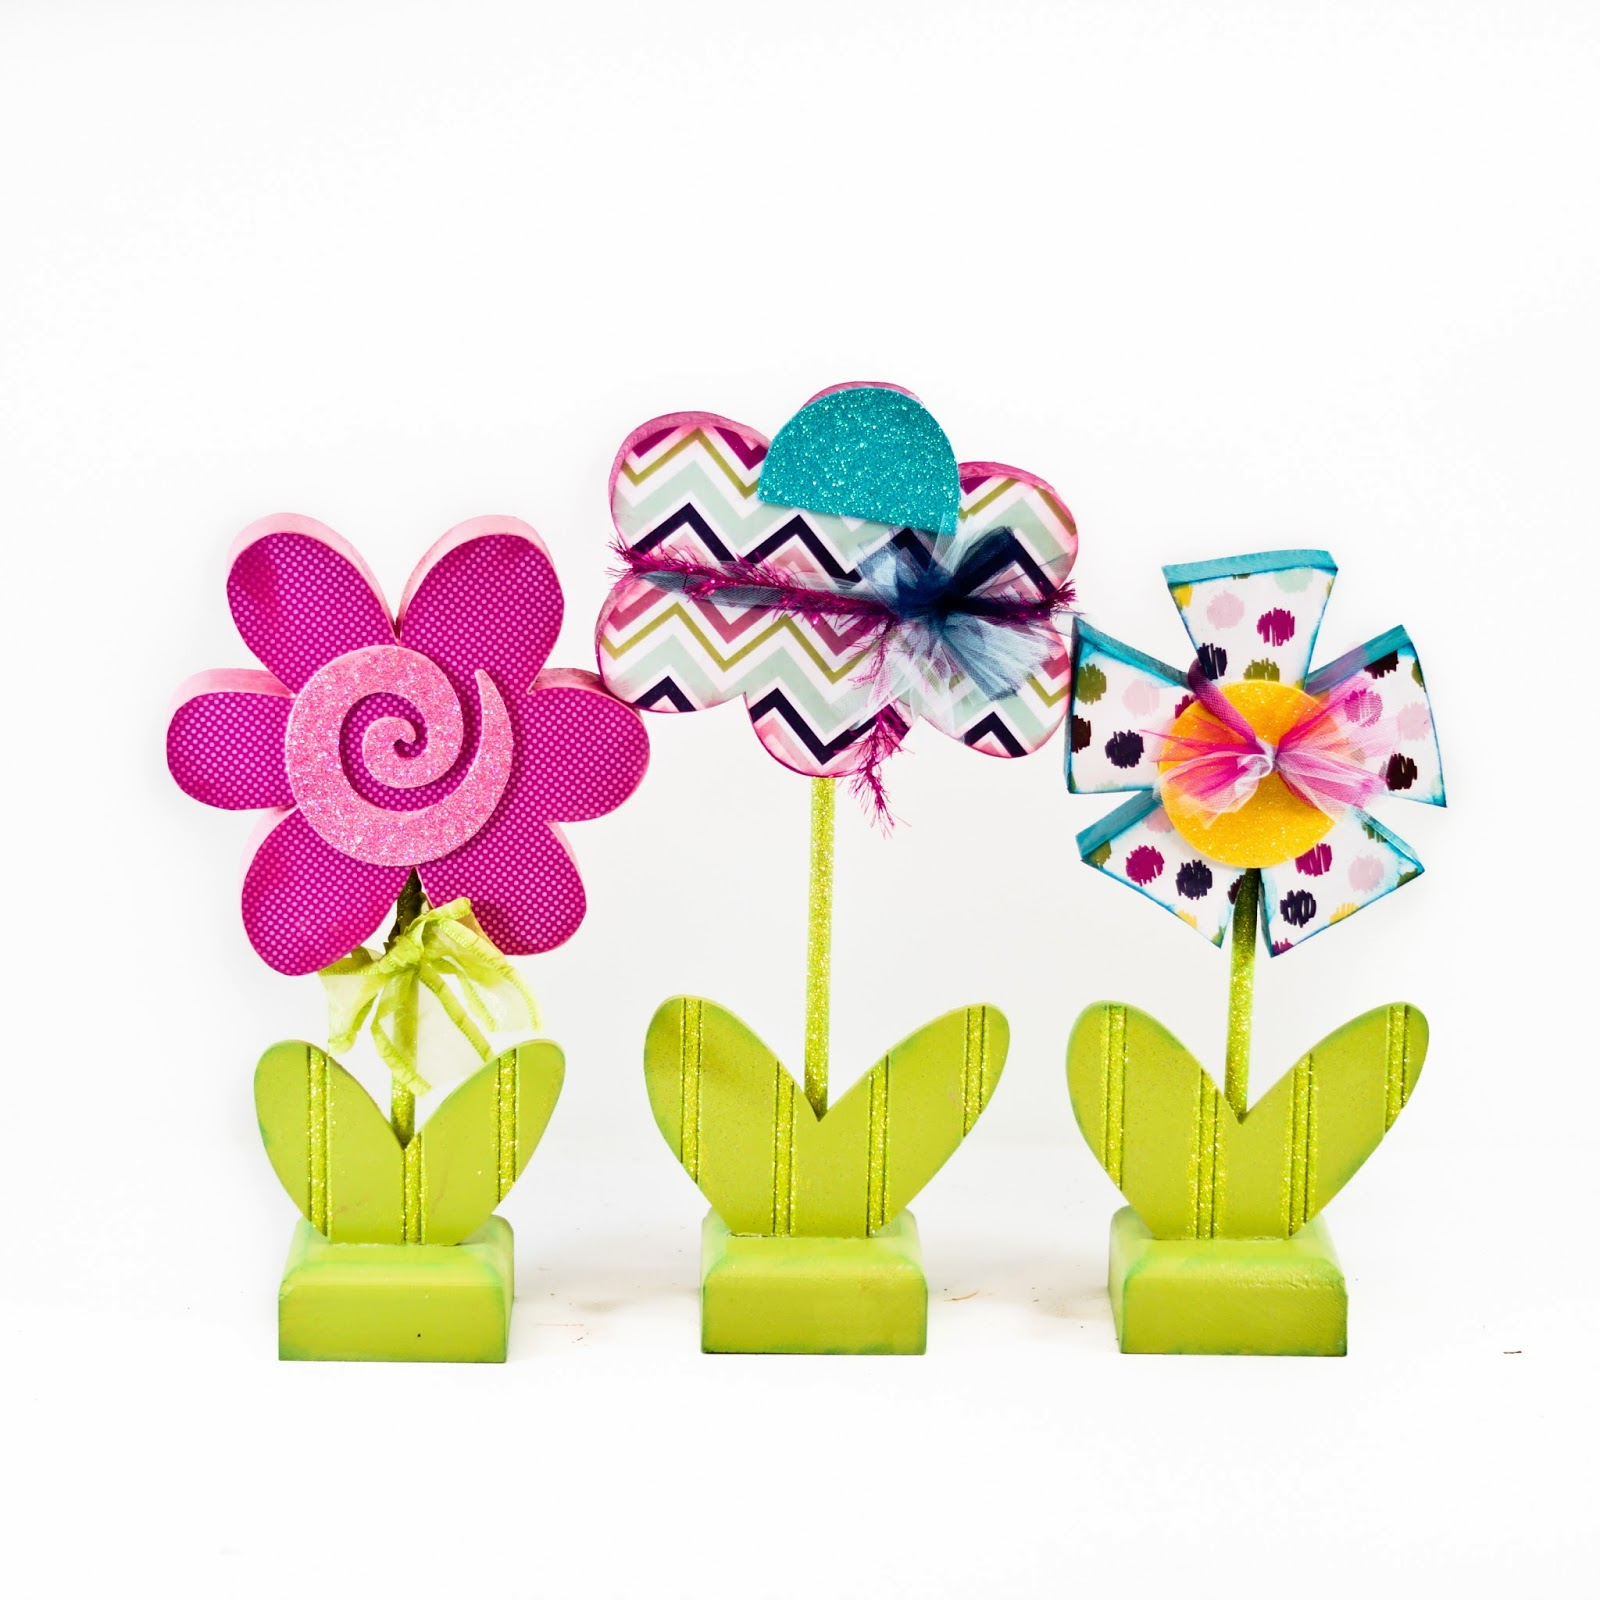 Featured 5 Spring Projects: WOOD Creations: Spring Crafts Are Here